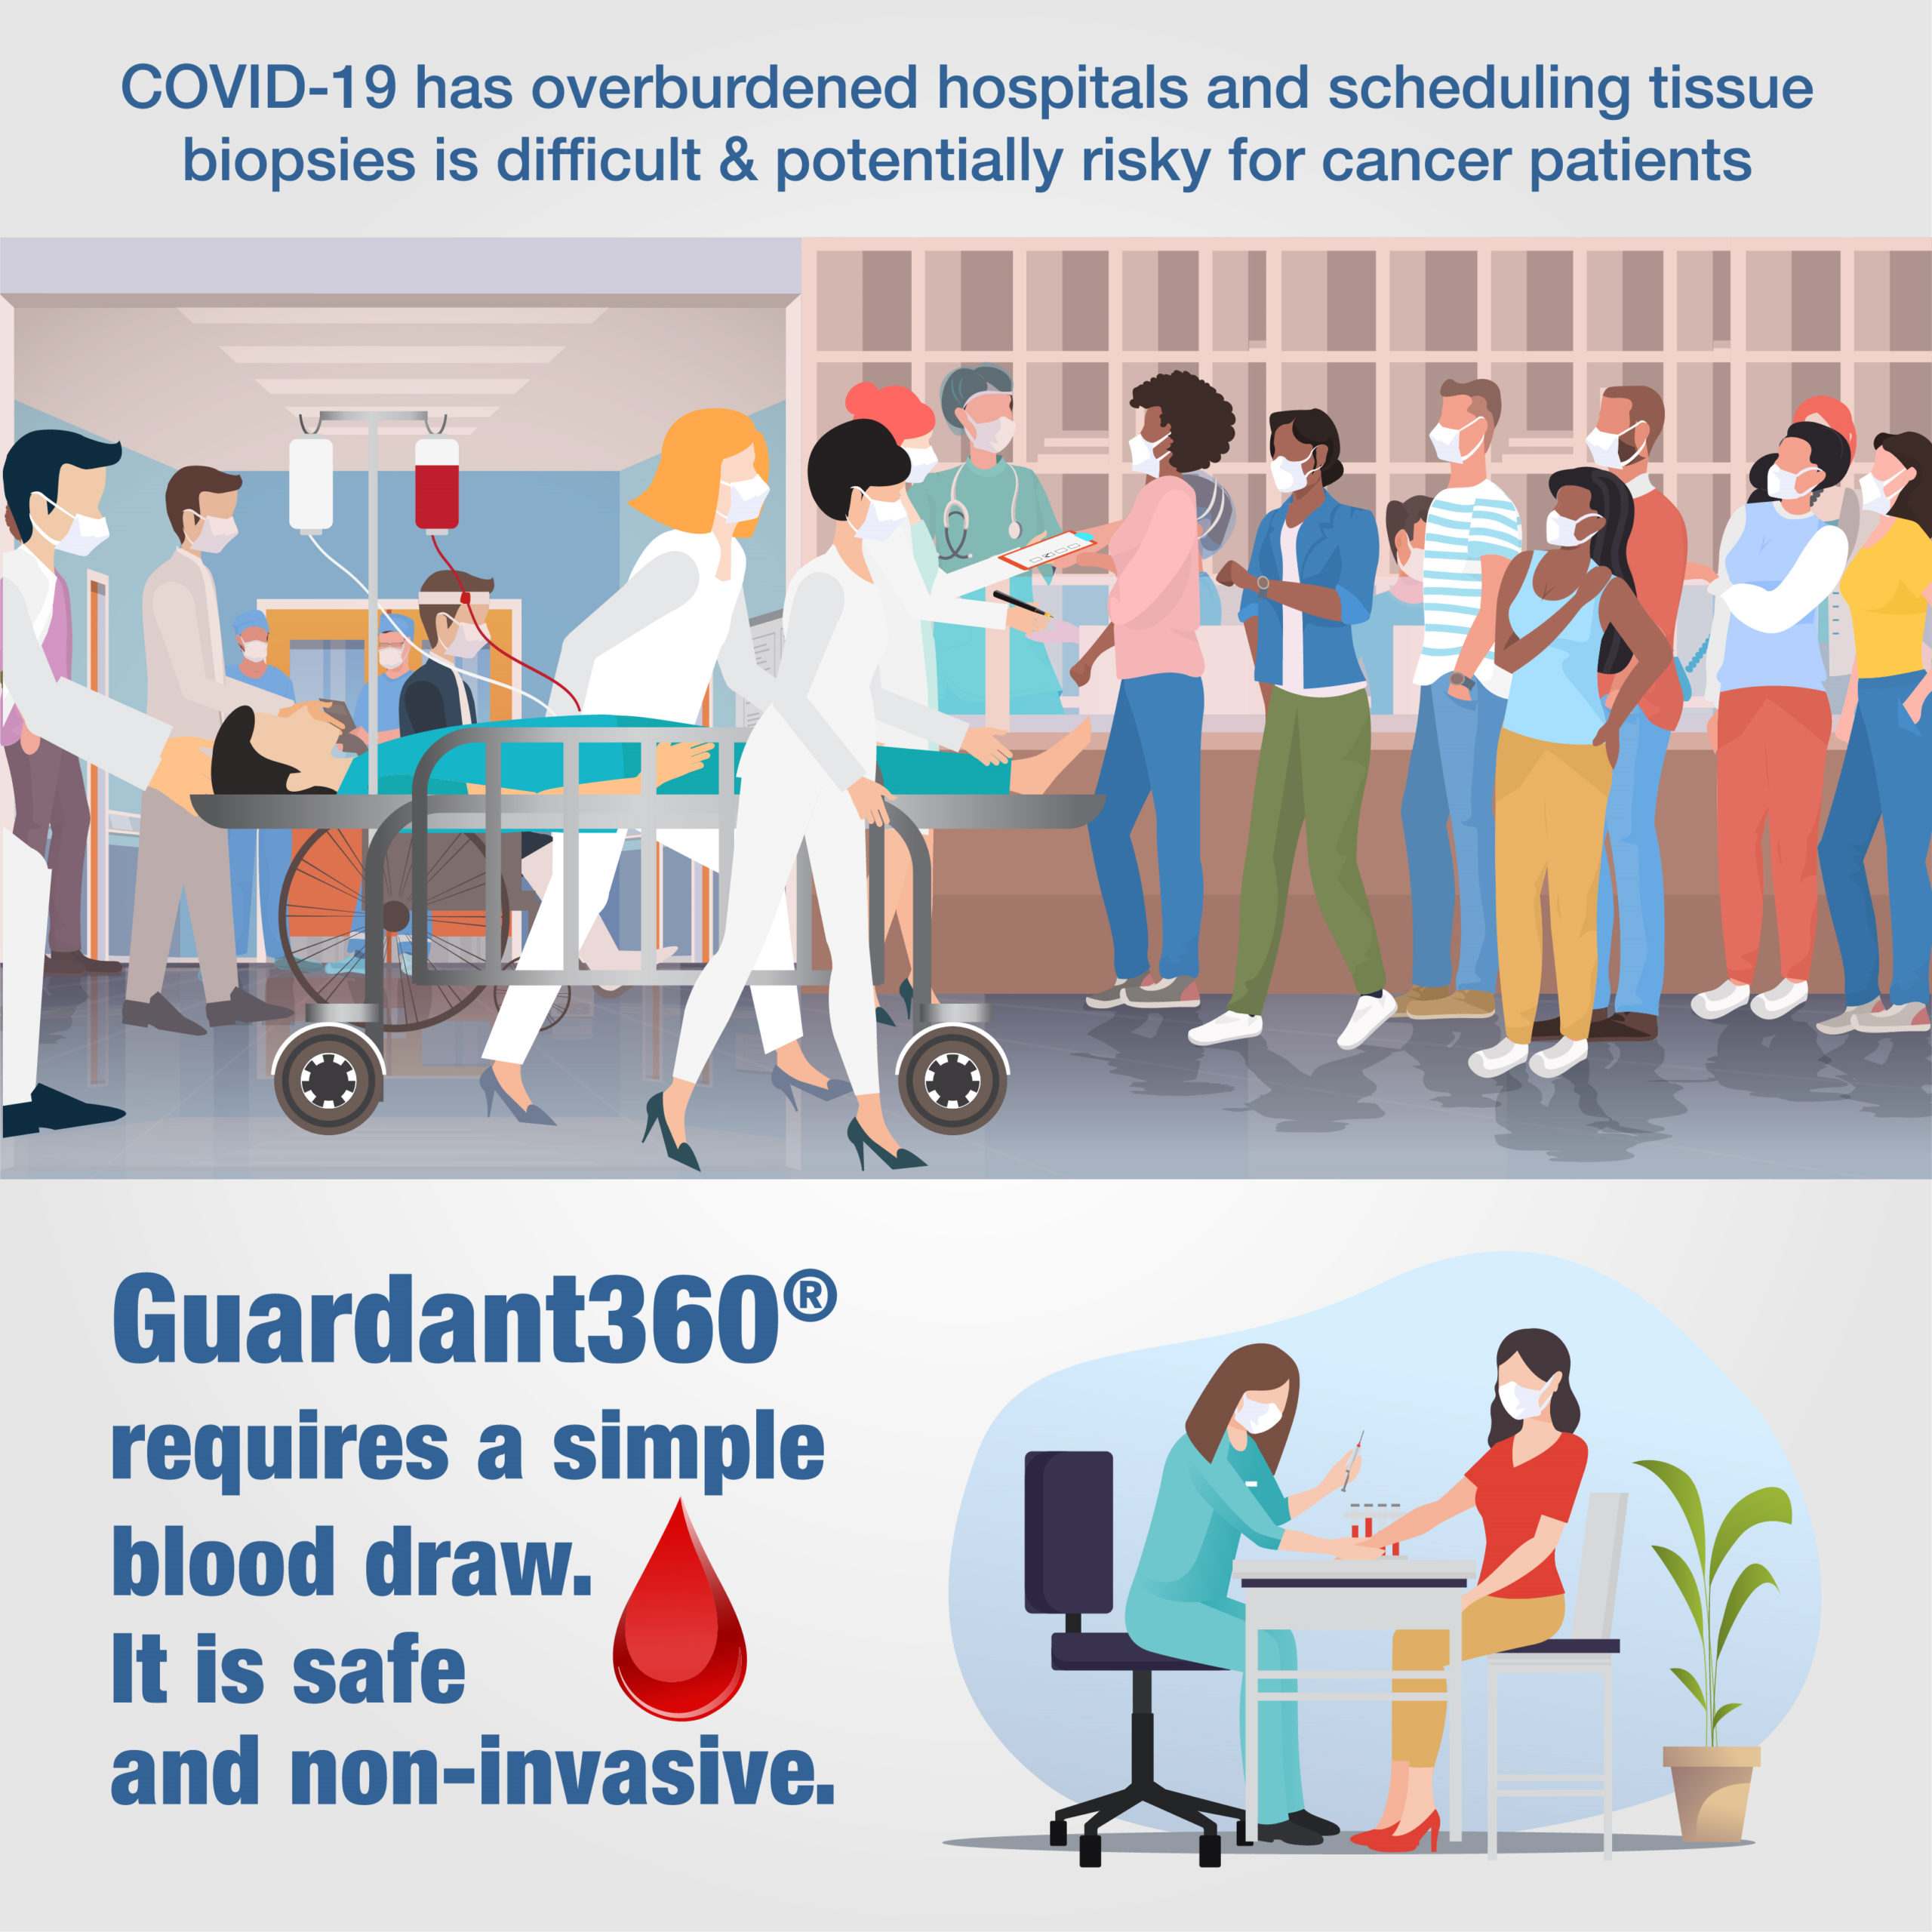 During this pandemic, you need a safe and non-invasive liquid biopsy like Guardant360®